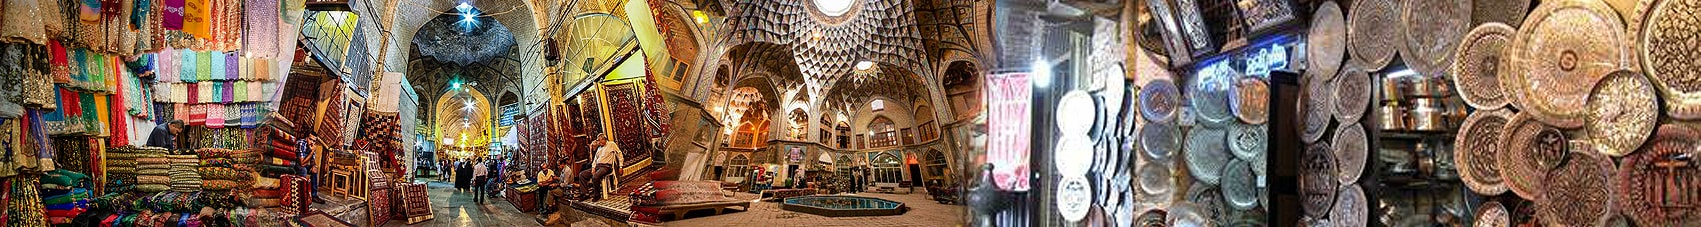 Daily markets- Iran. Grand Bazar – Iran, Tajrish market.